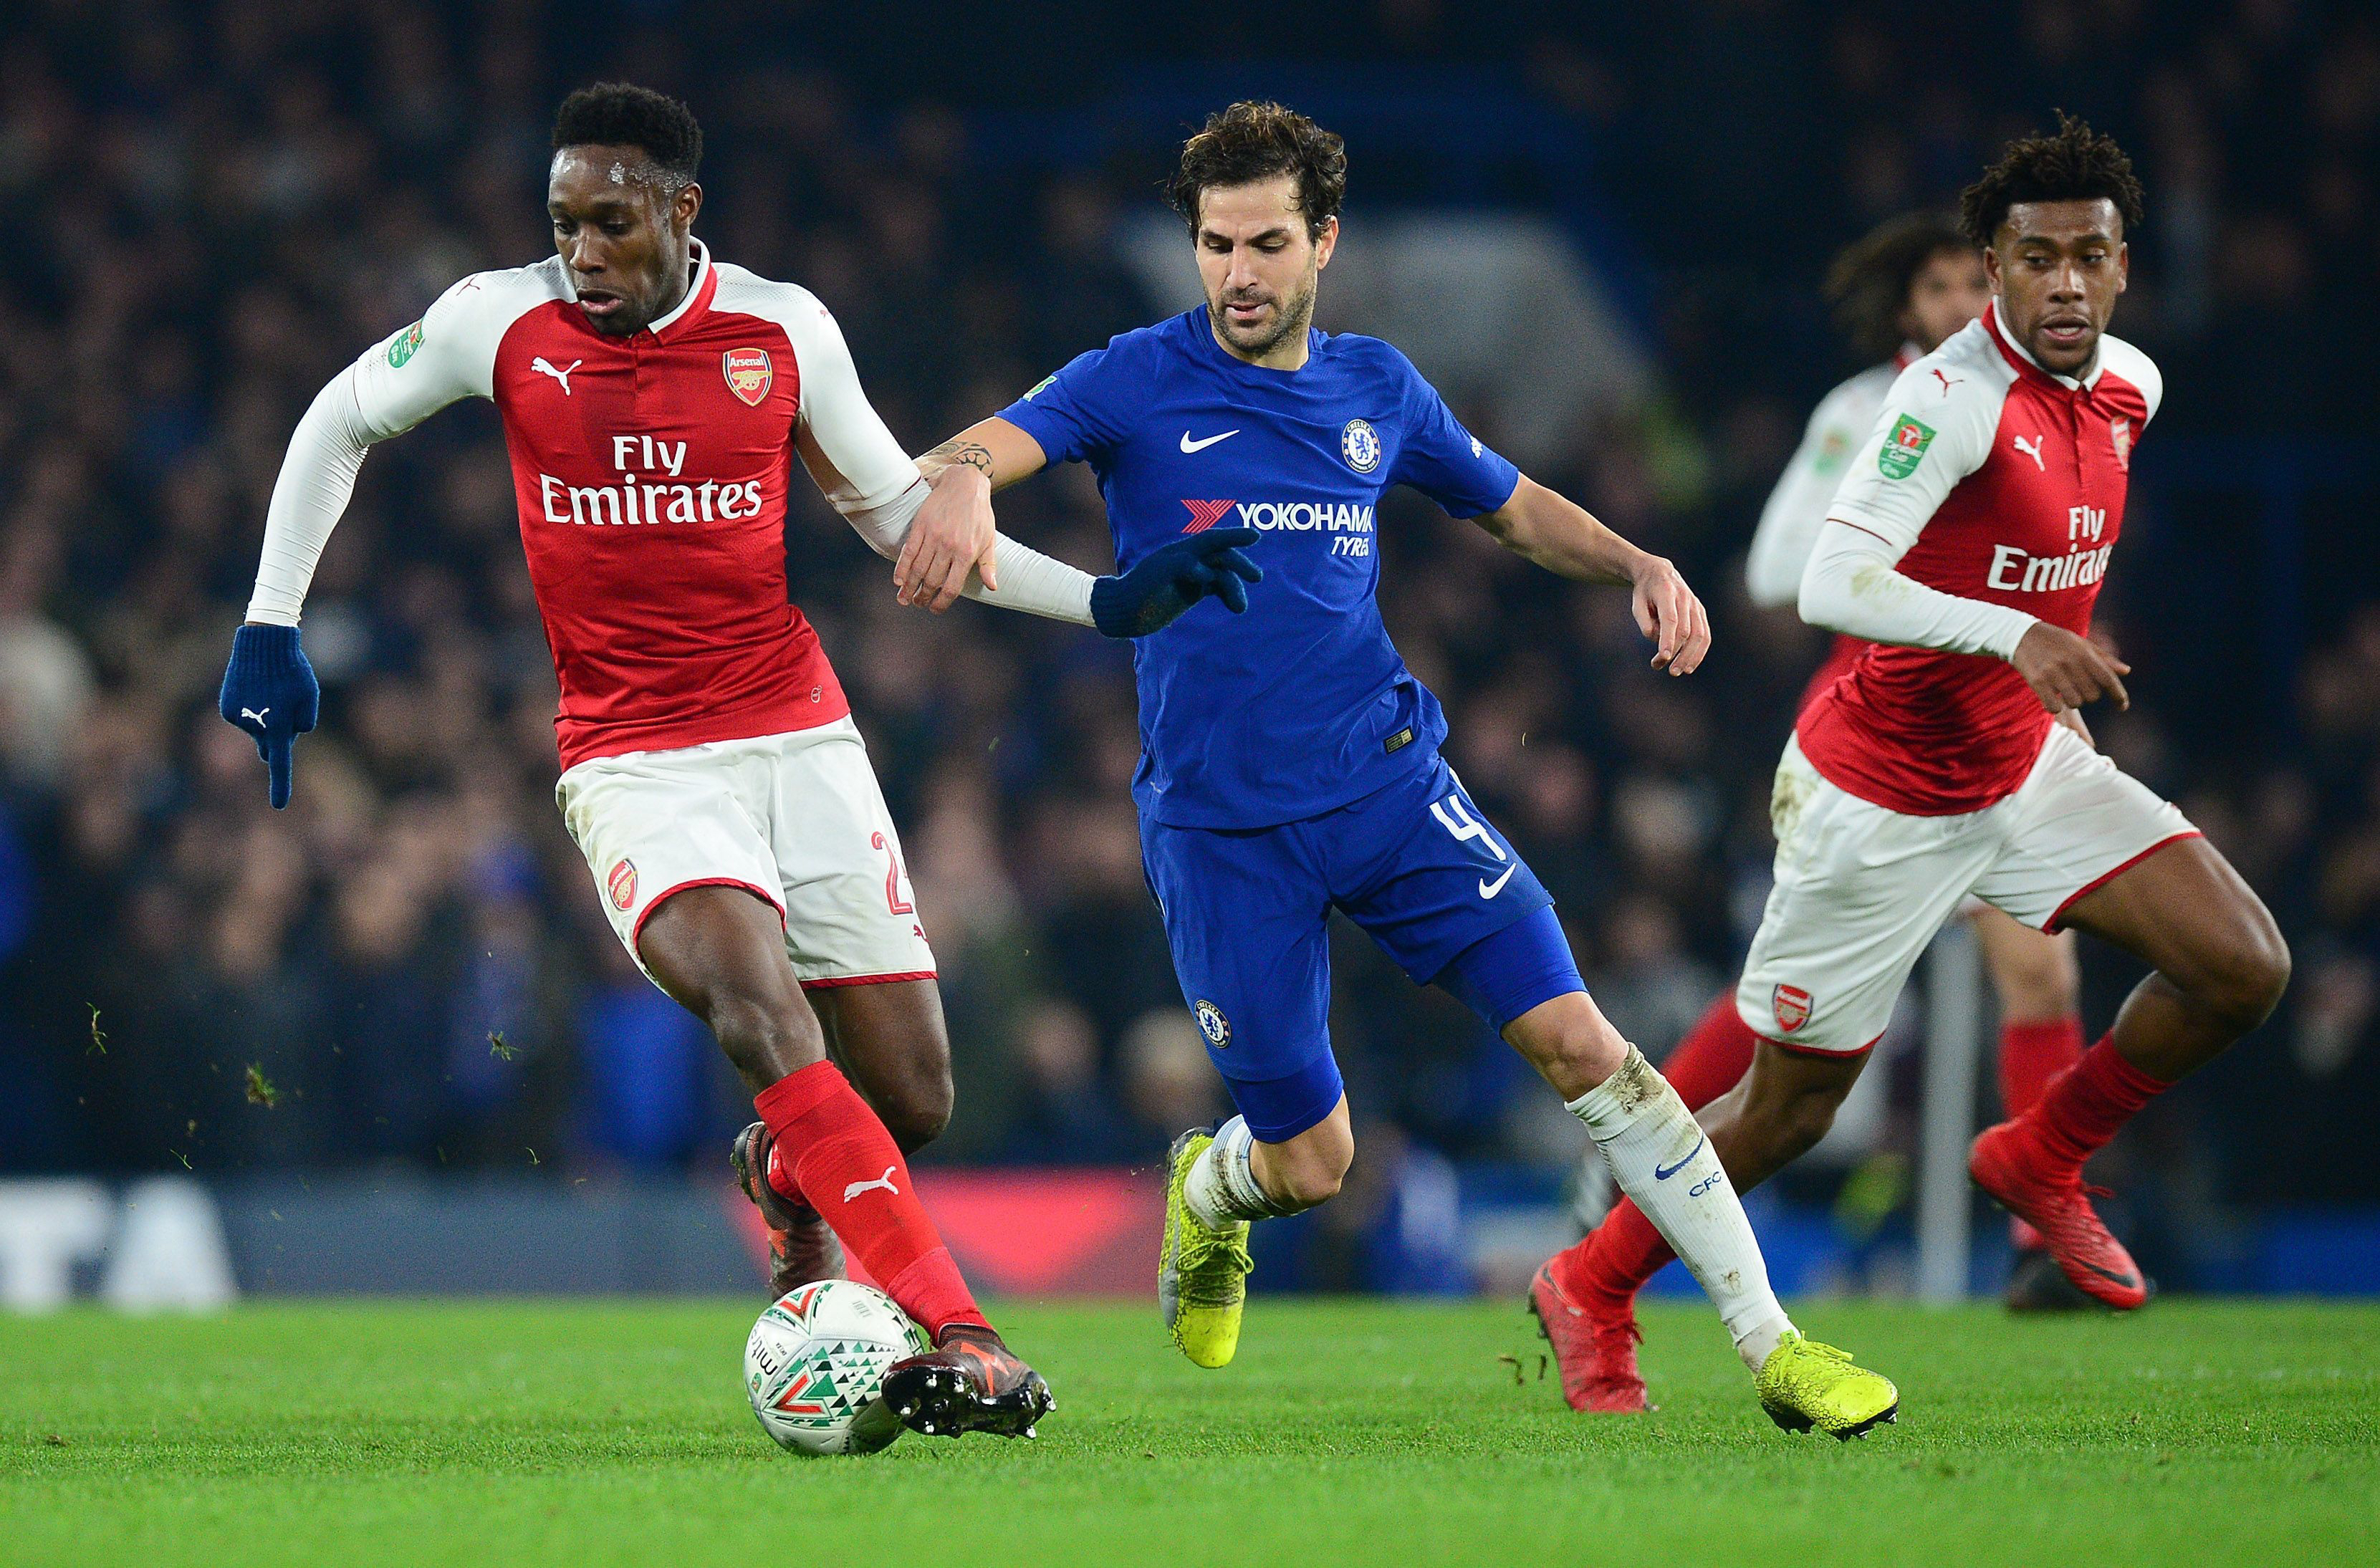 Chelsea v Arsenal, UK – 10 Jan 2018